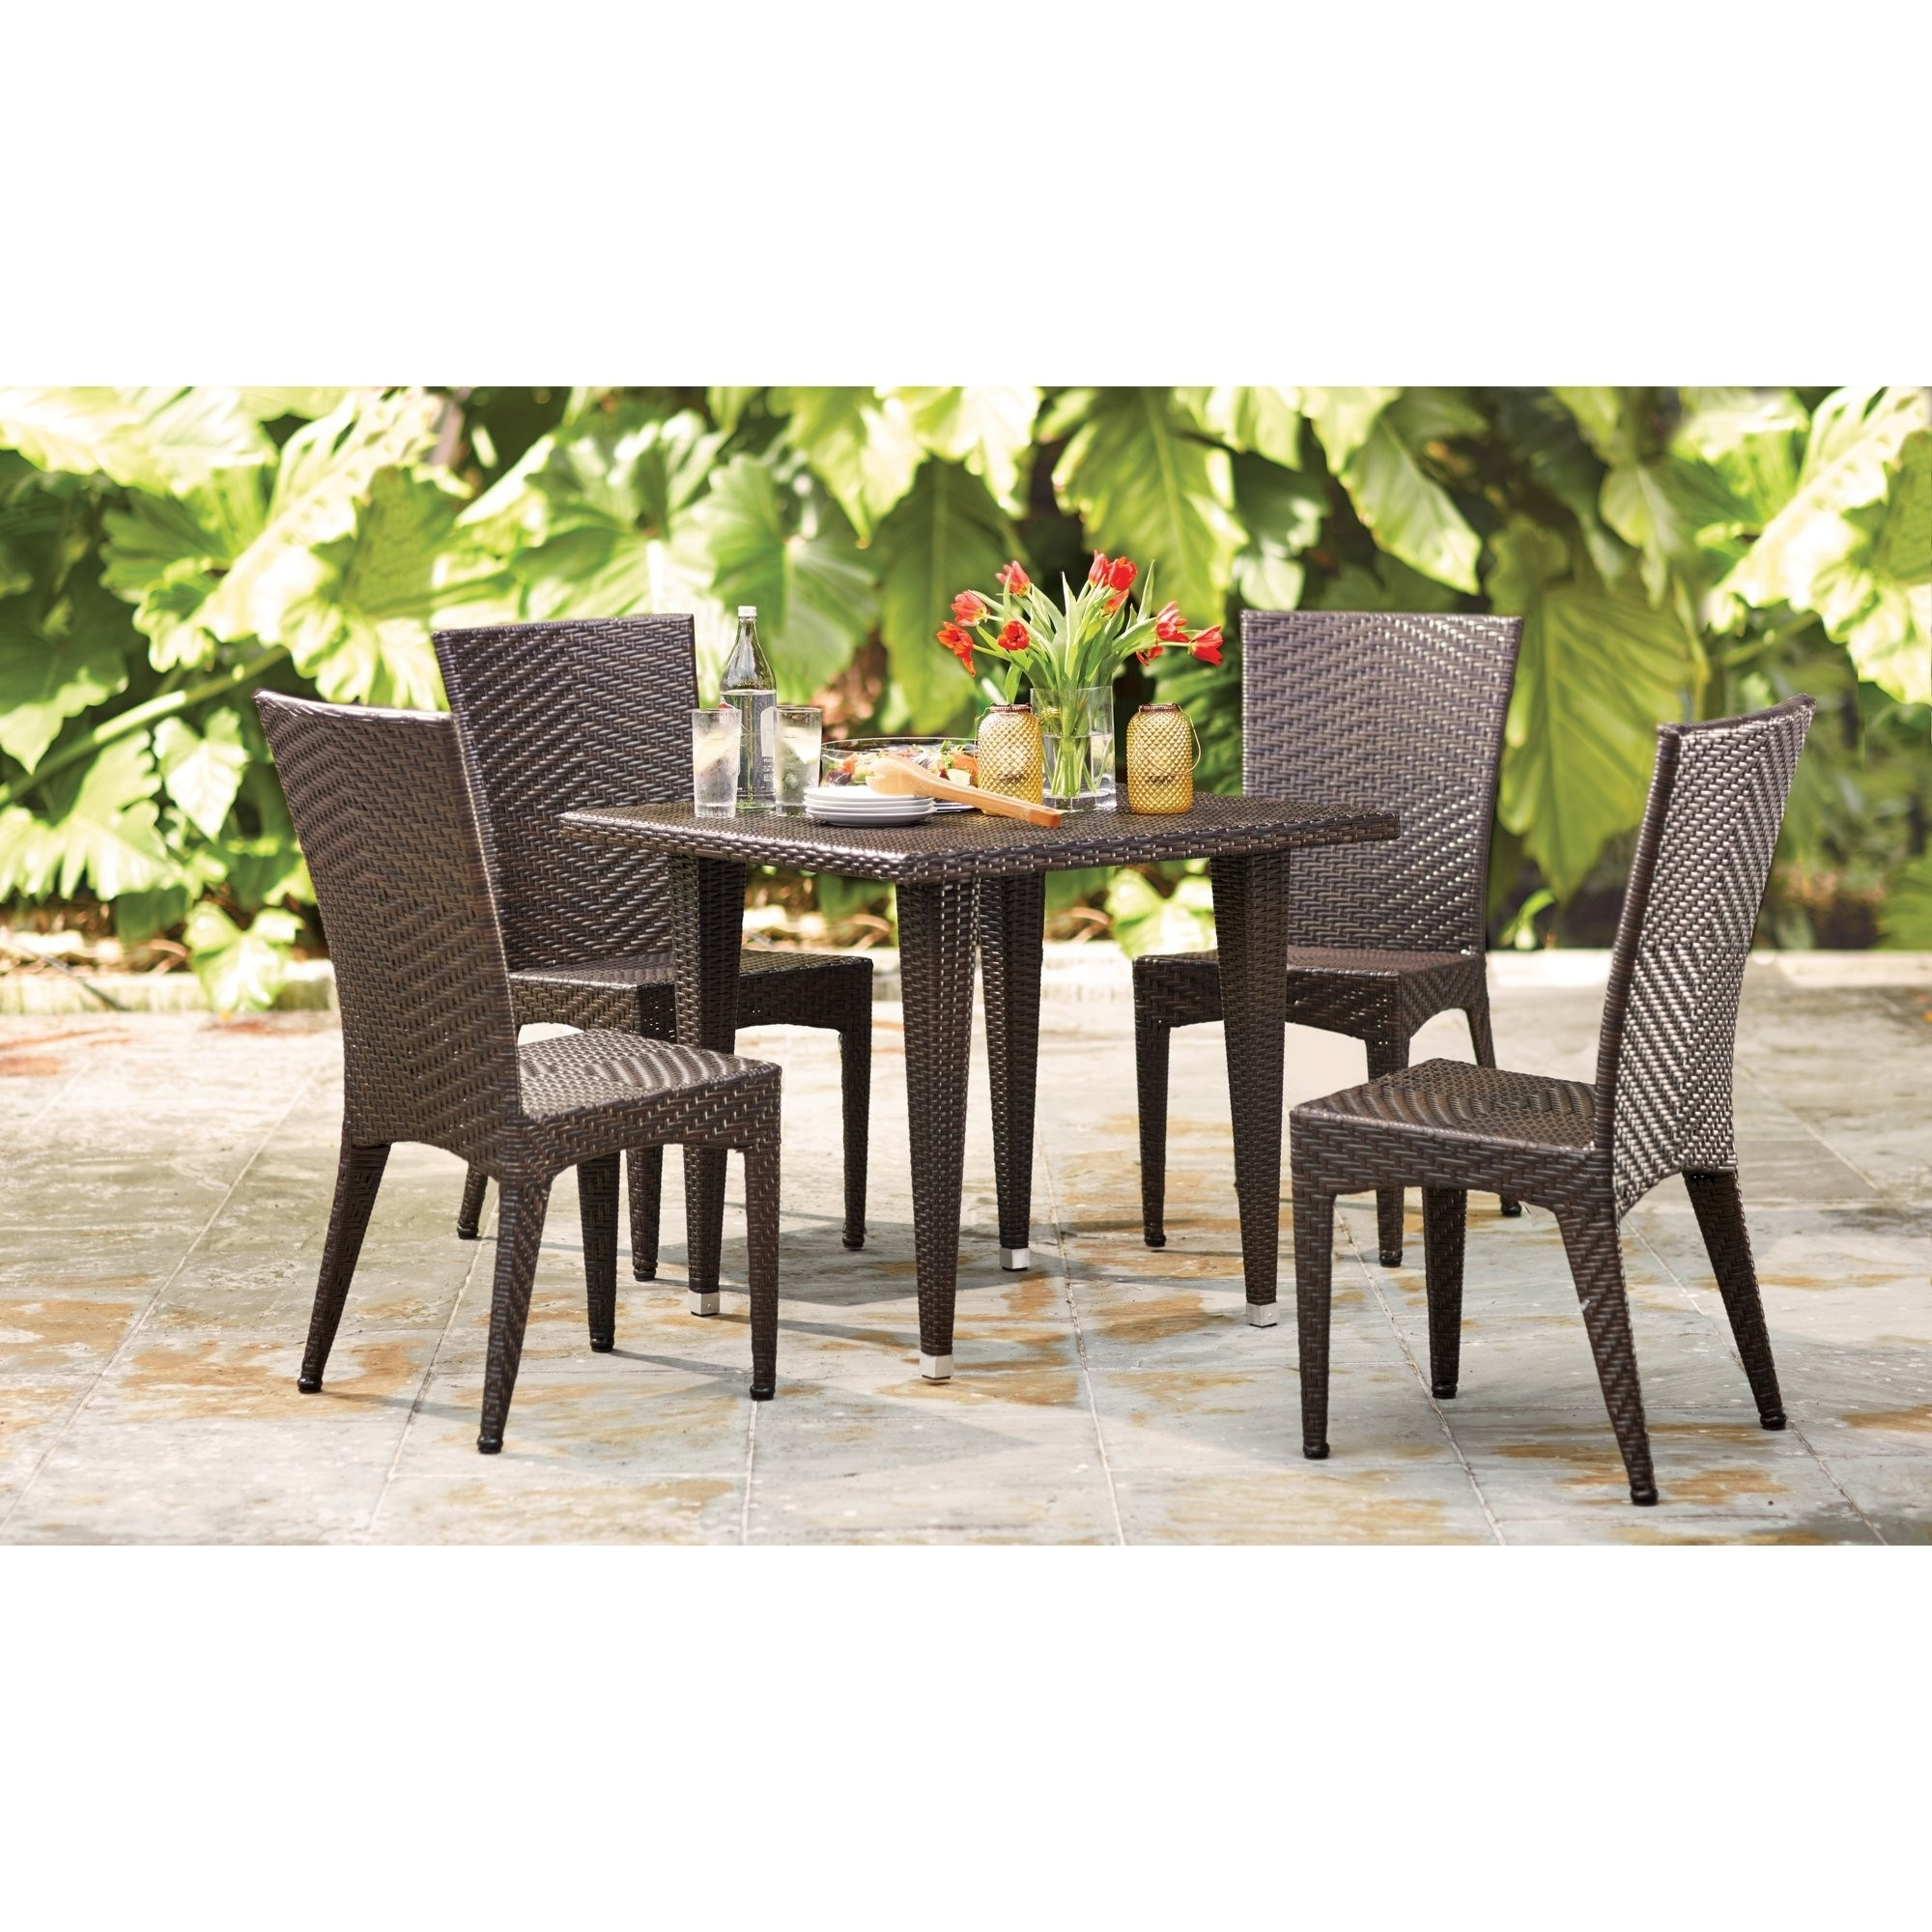 Fun Wayfair Patio Furniture Clearance Wayfair Outdoor Furniture For Best And Newest Wayfair Patio Umbrellas (Gallery 9 of 20)